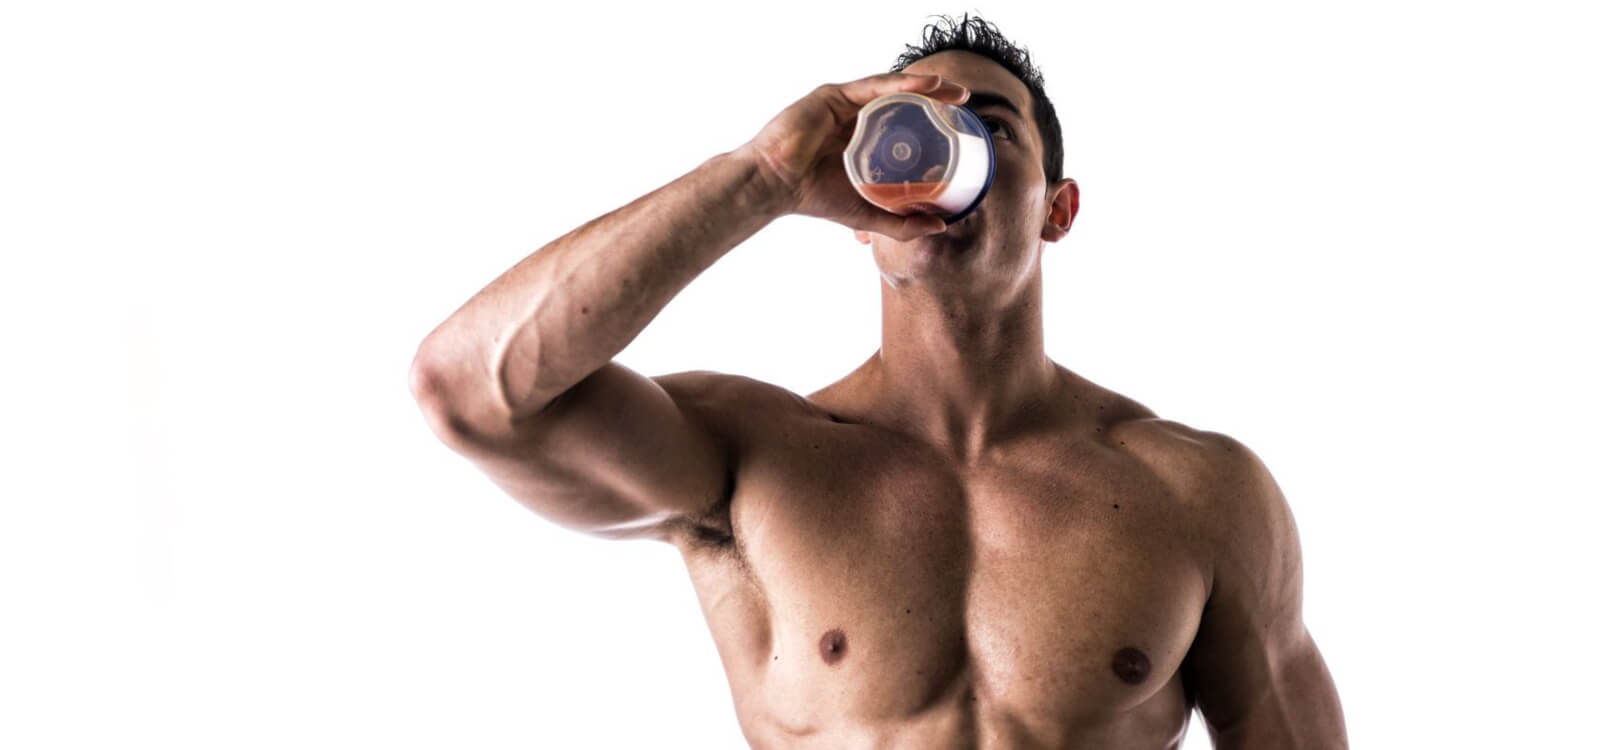 Does Combining L-Citrulline with BCAAs Improve Workout Performance?